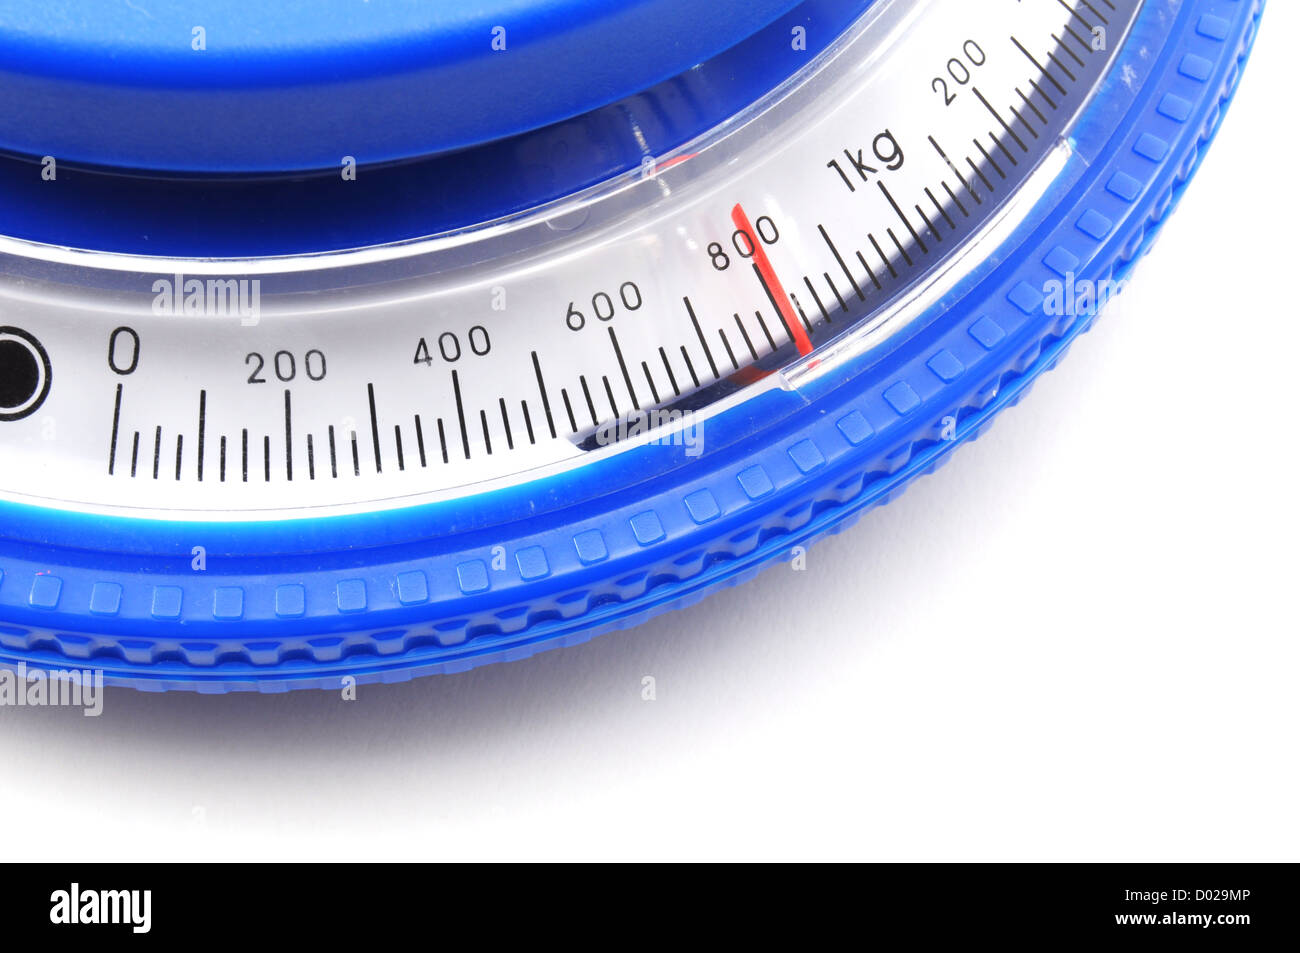 blue kitchen scales or balance showing cooking concept Stock Photo